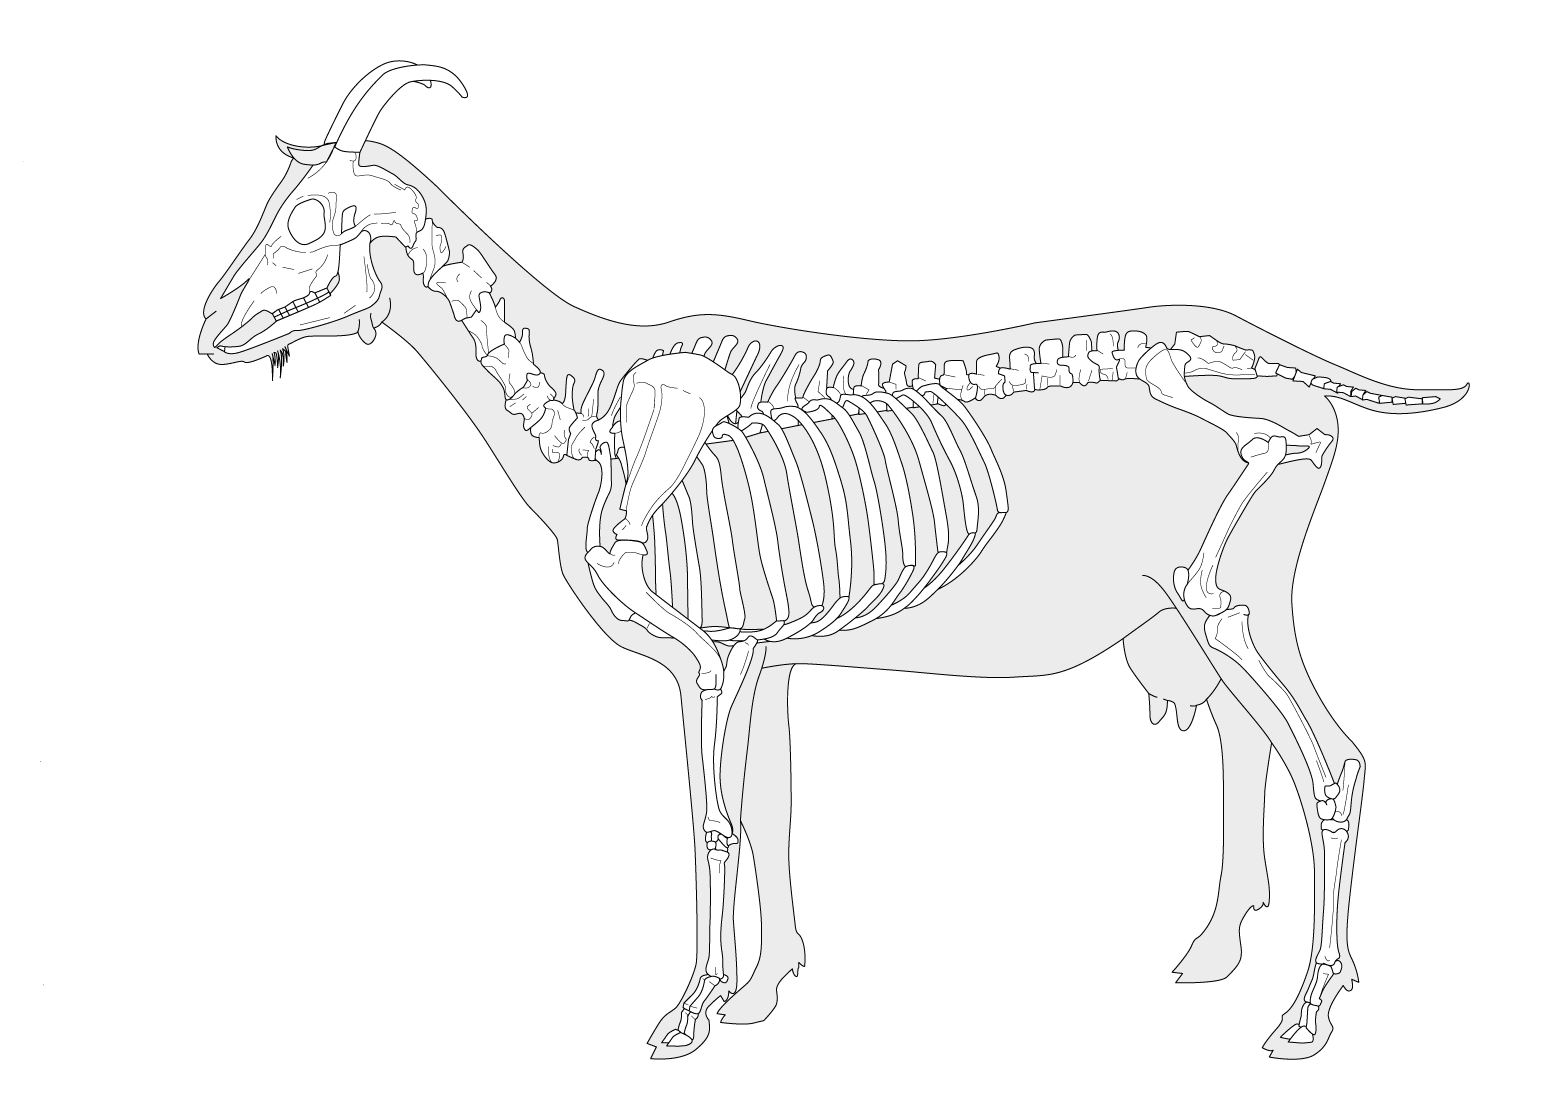 Boer Goat Anatomy Muscles Diagram Enthusiast Wiring Diagrams